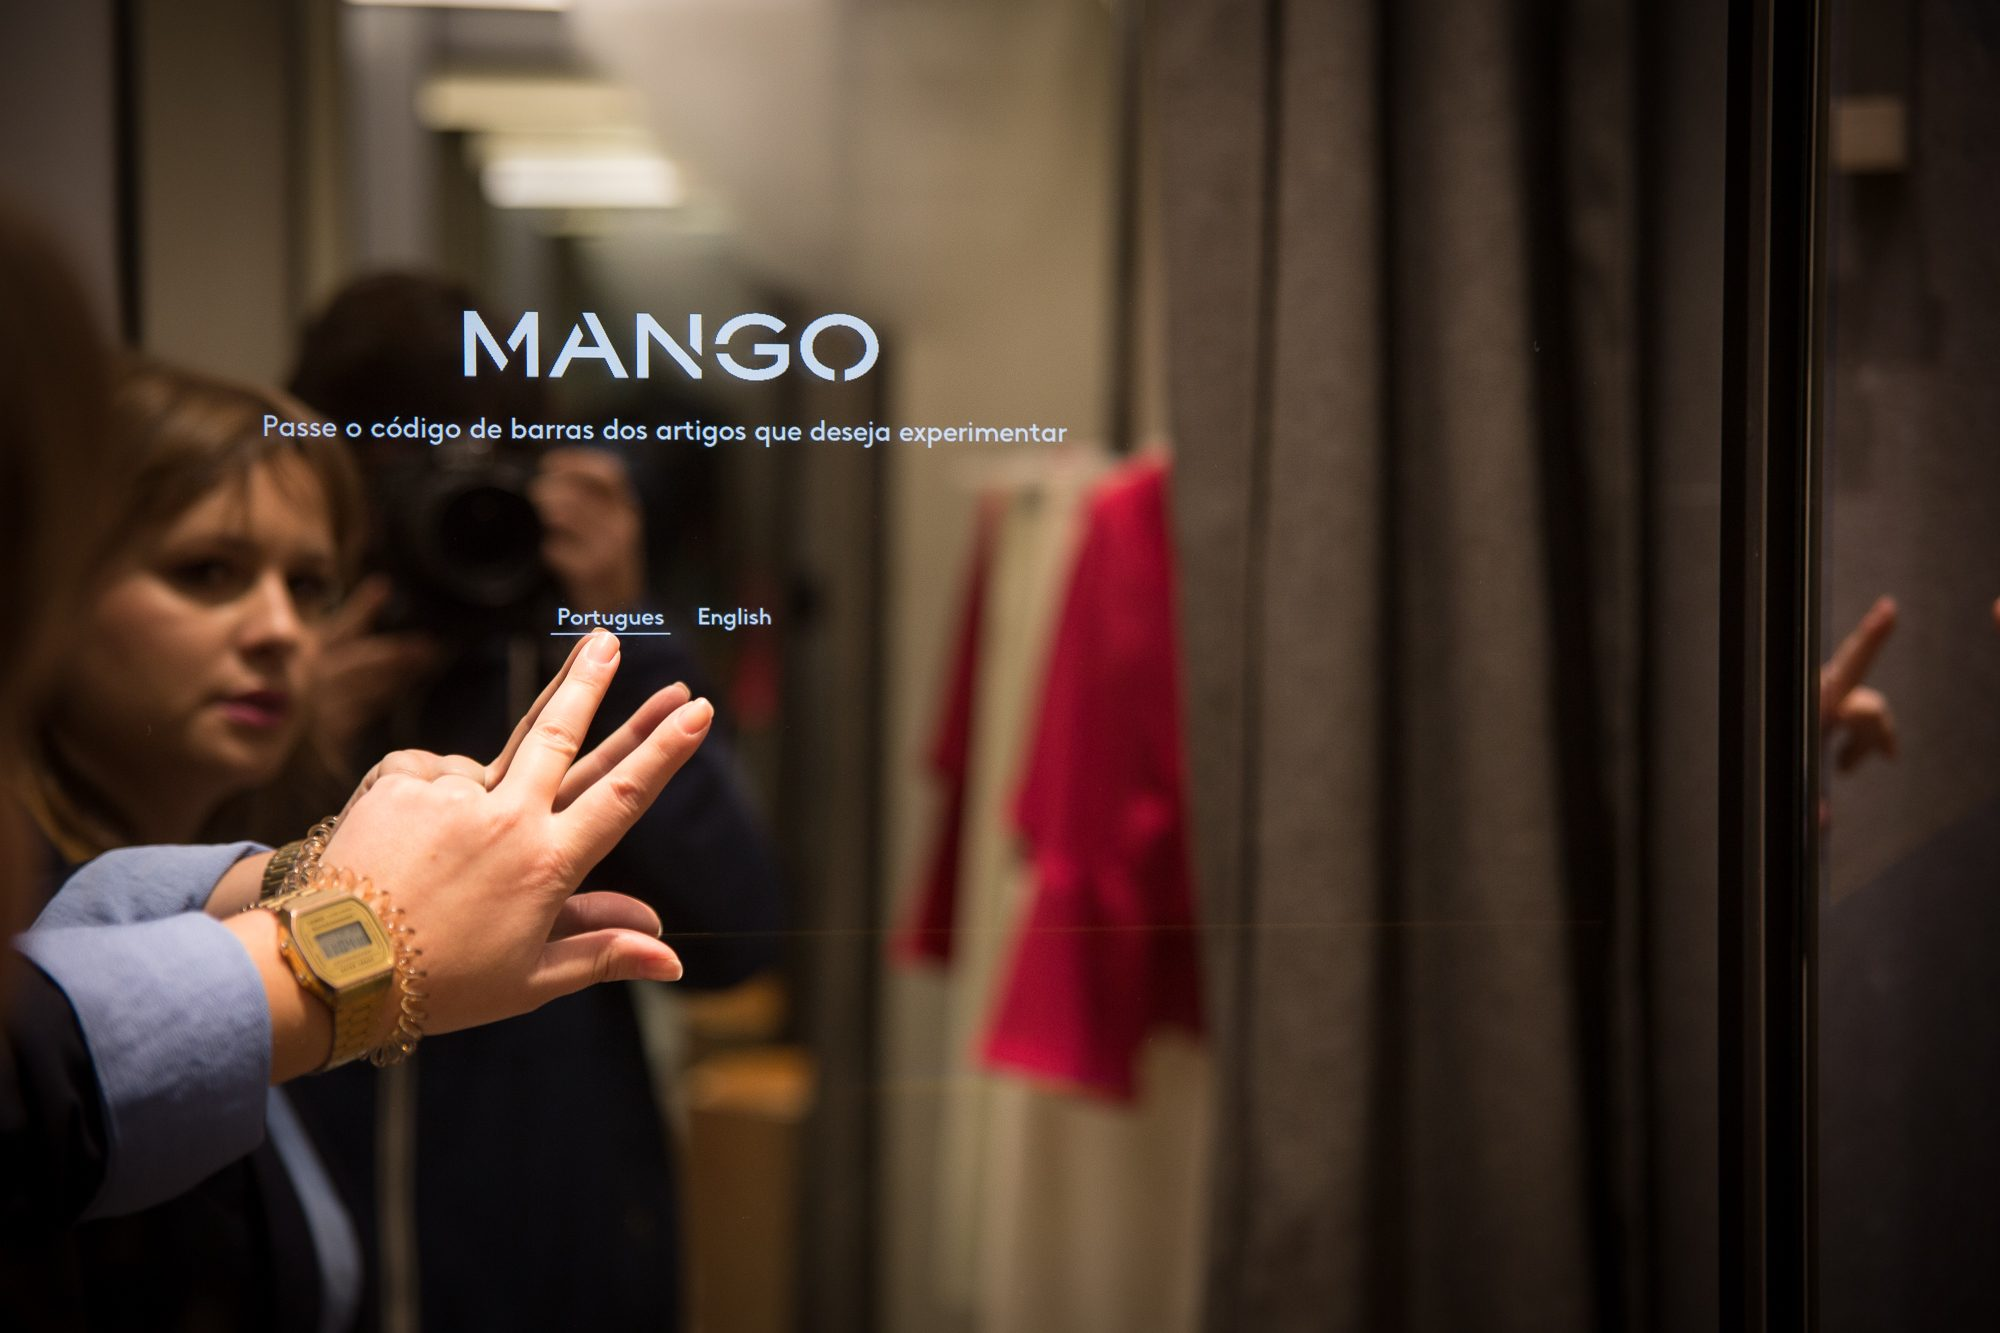 Digital mirror Mango